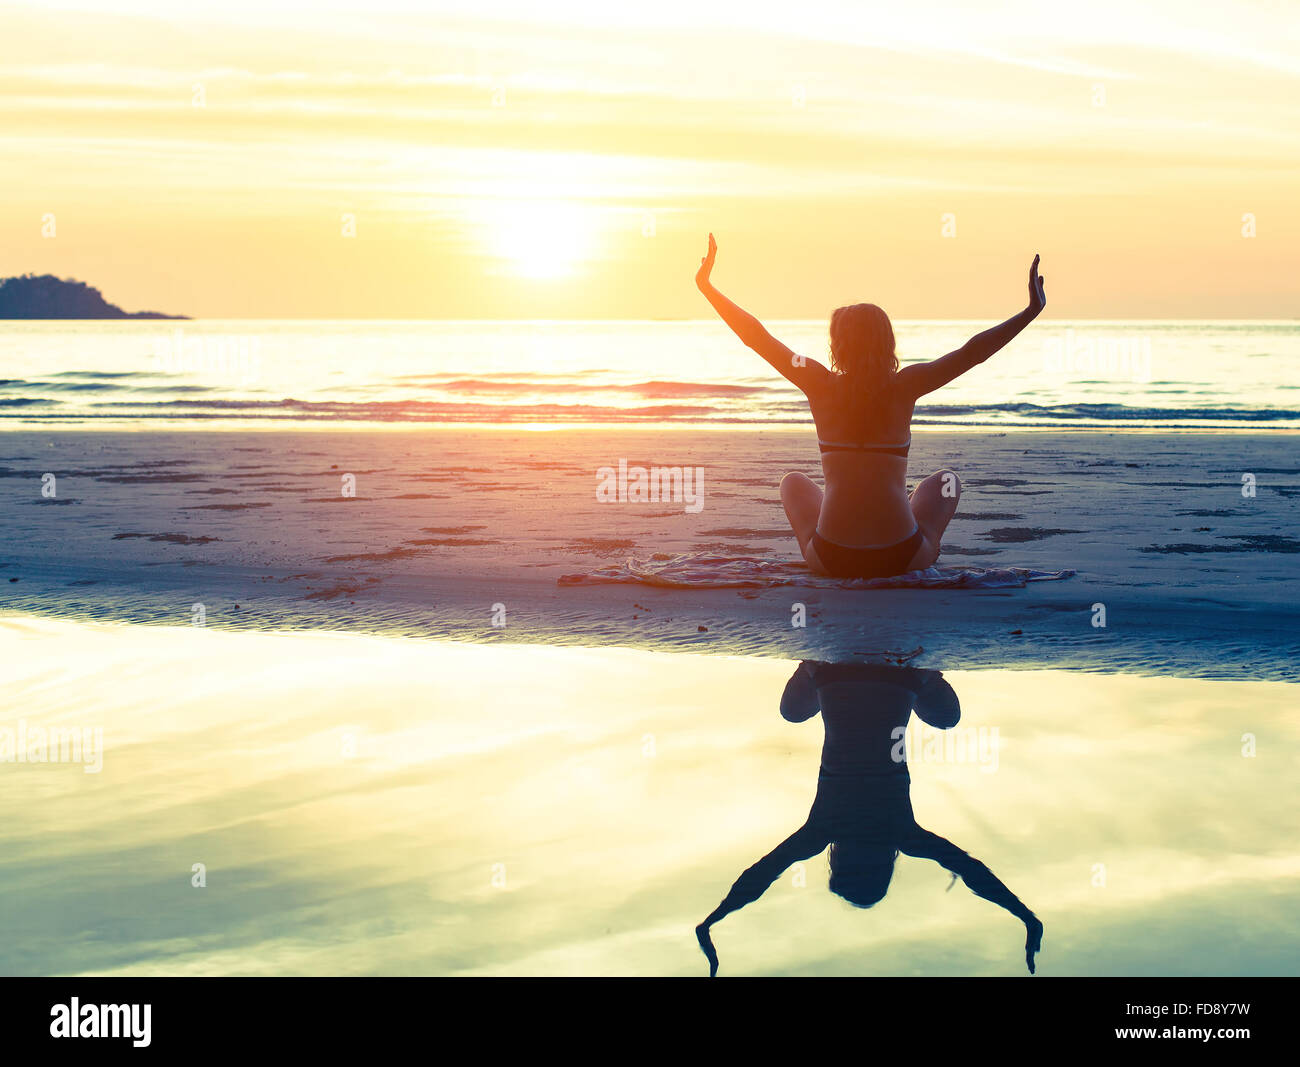 Silhouette of the woman sitting on the beach during amazing sunset, with reflection in the water. Health and Yoga - Stock Image